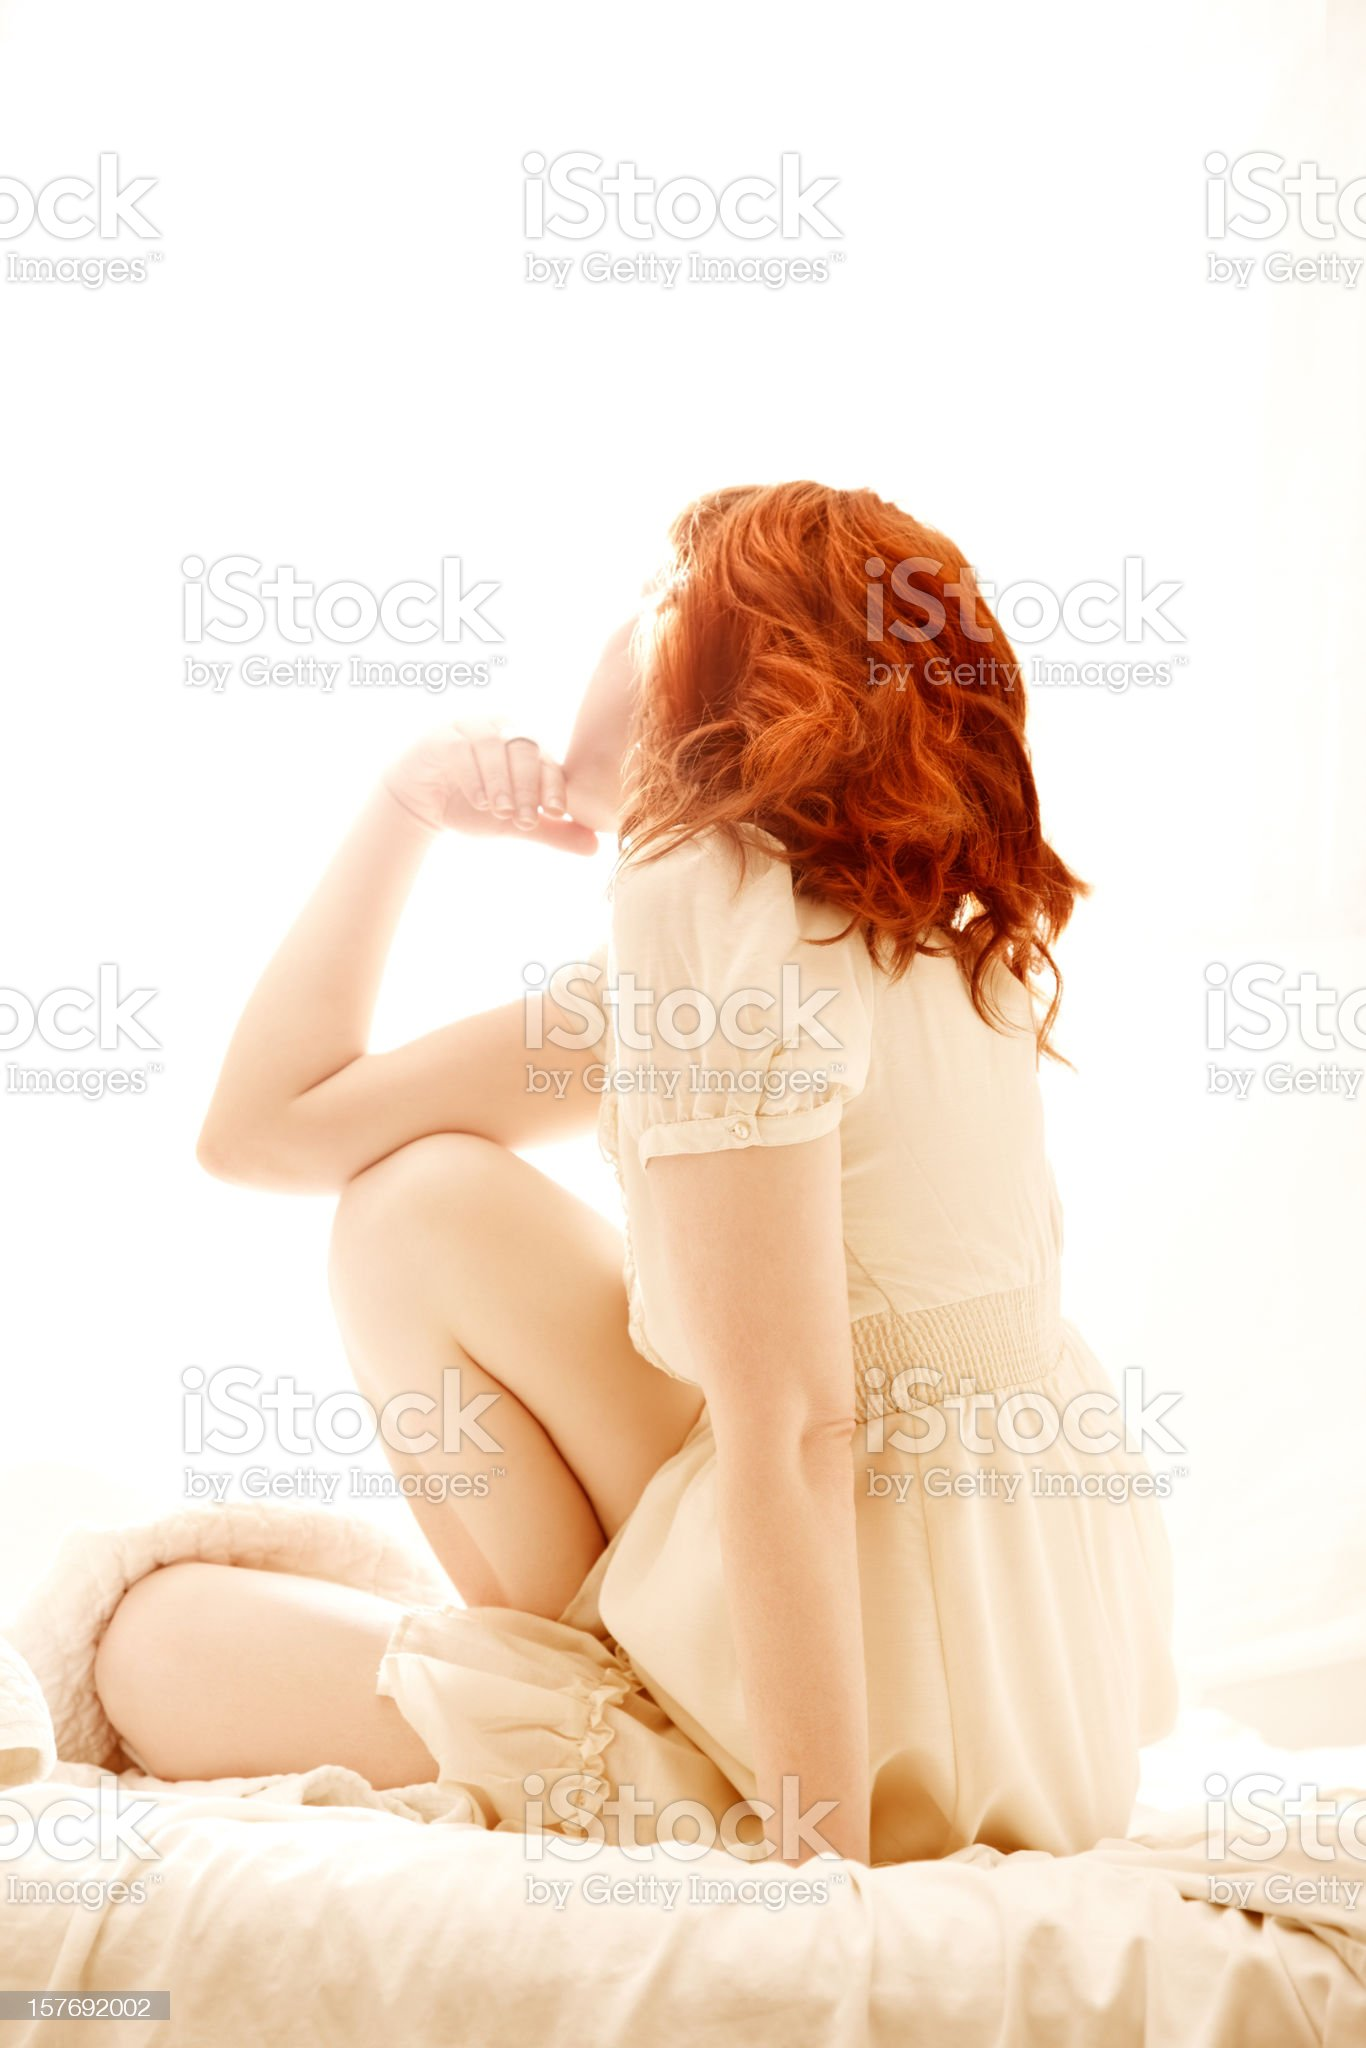 Unrecognizable redhead woman sitting in bed royalty-free stock photo